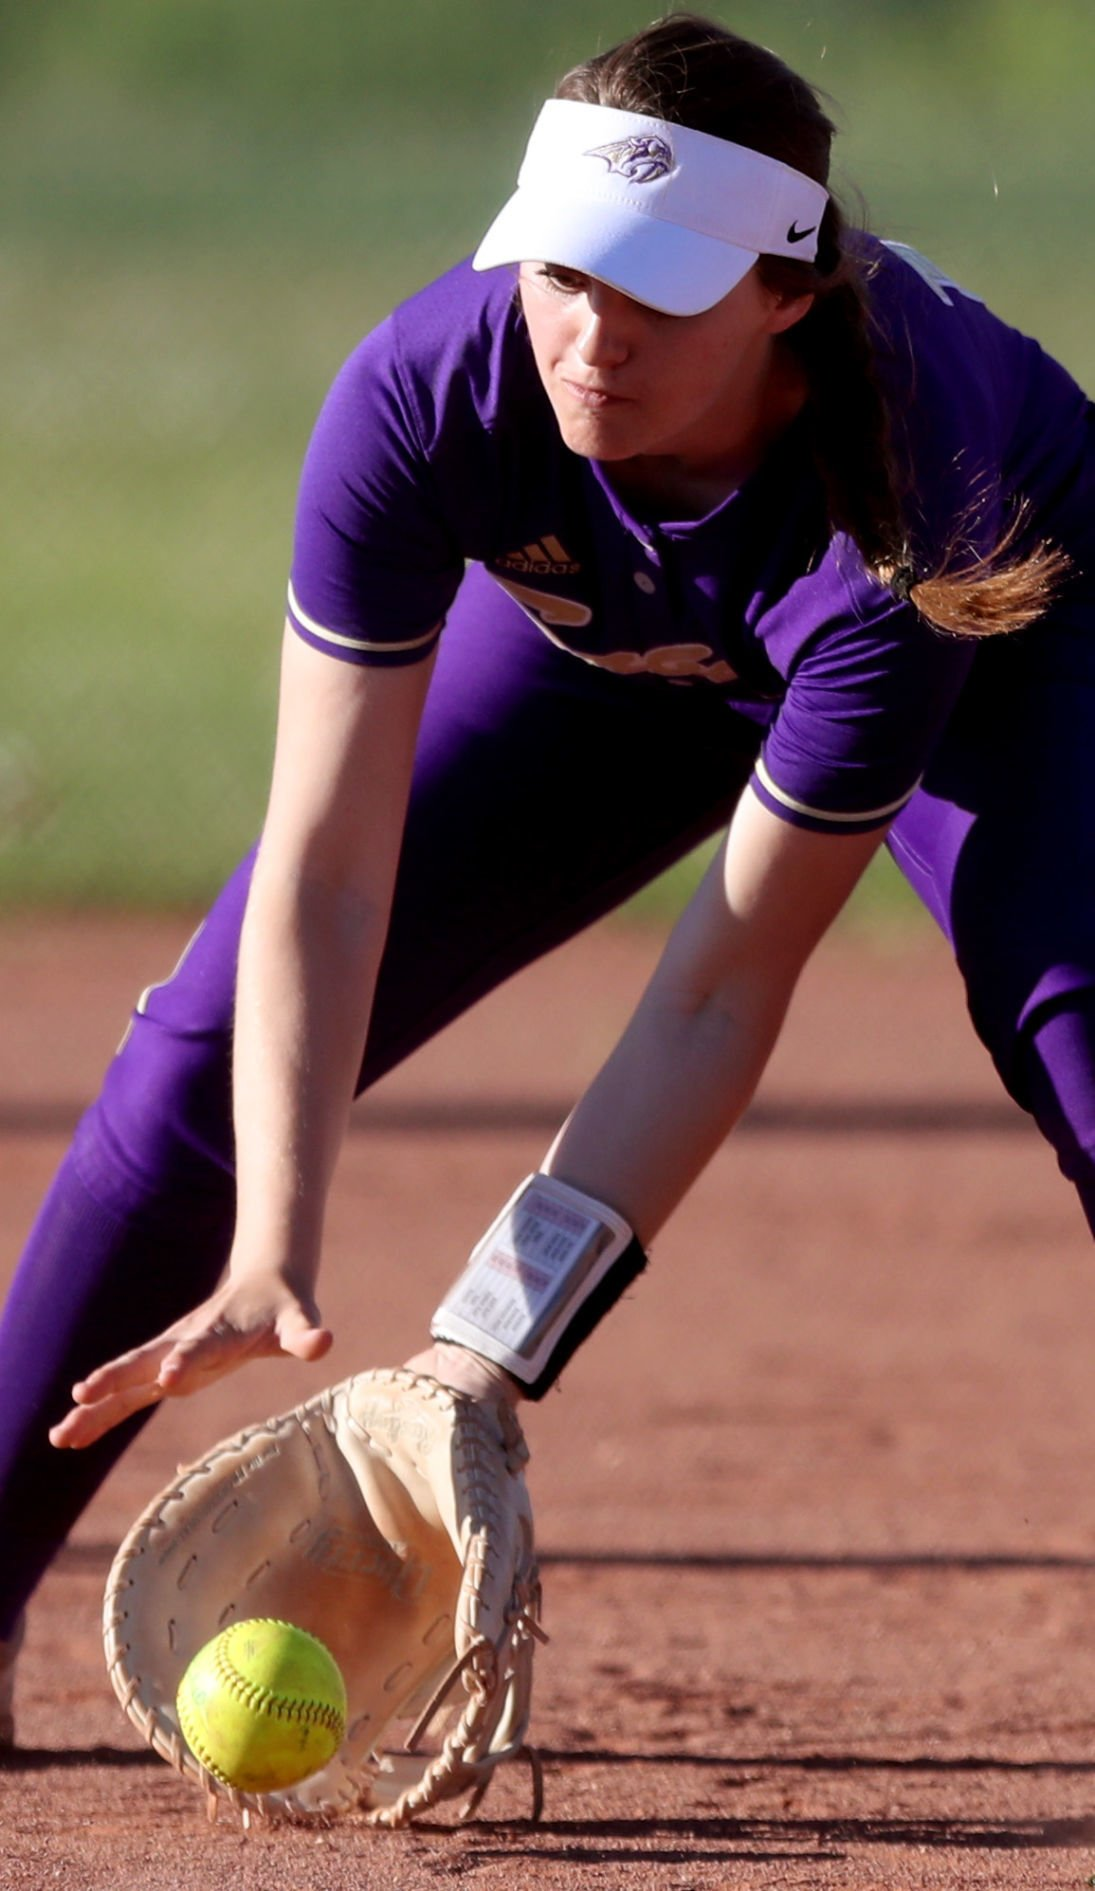 031520-spt-hs softball-p9.jpg